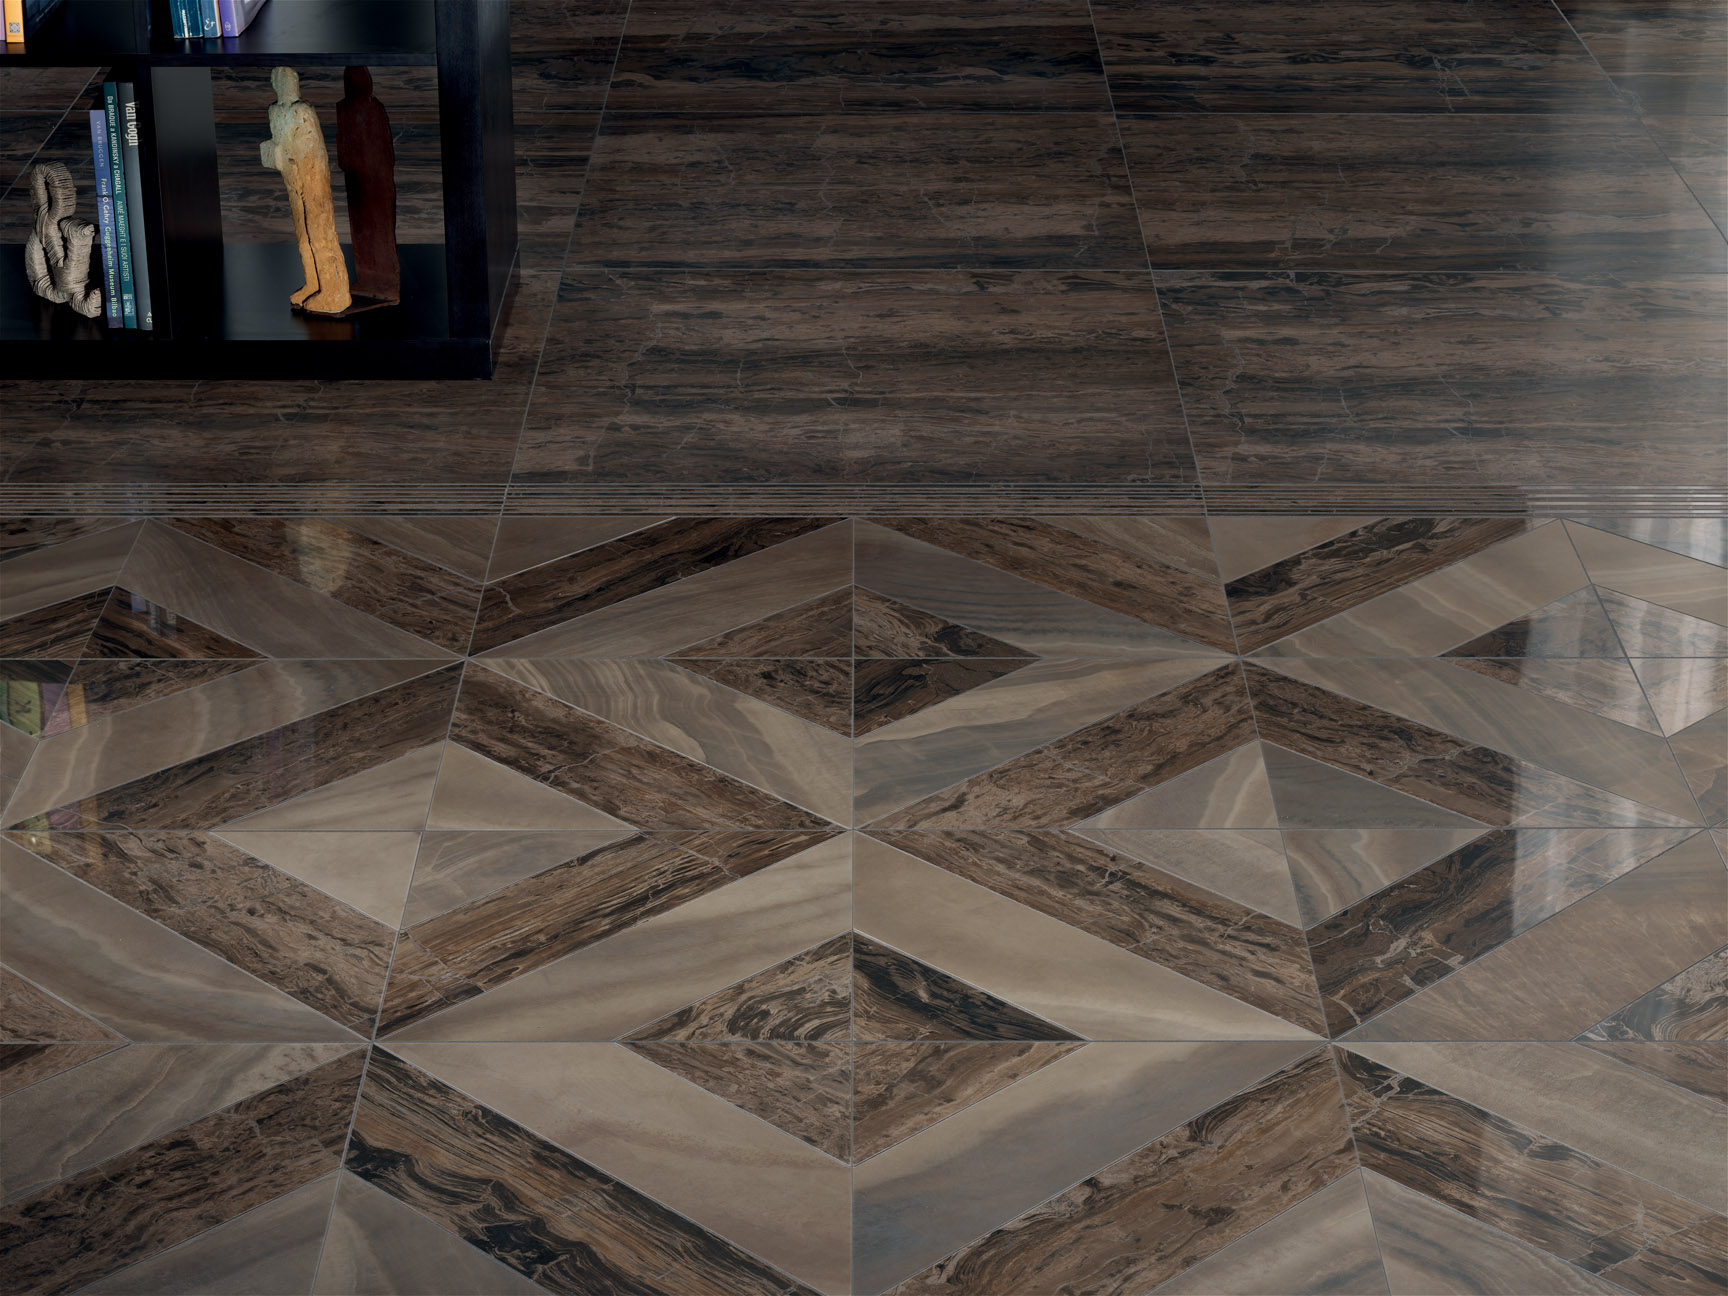 porcelain tile example: Charisma range high resolution photo